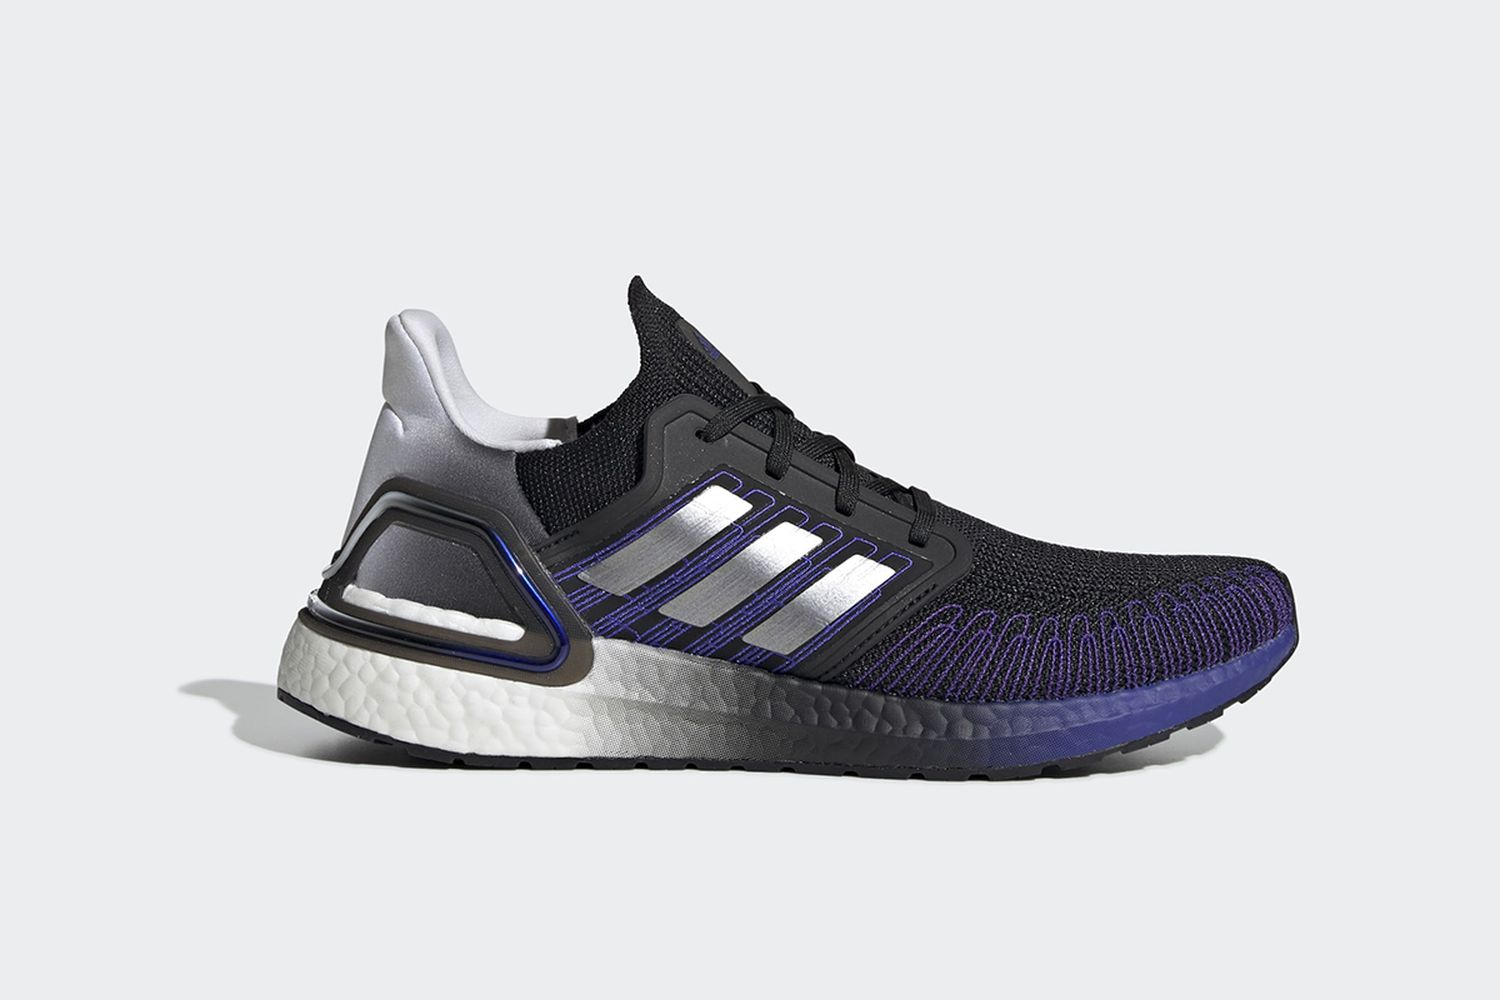 Shop the New adidas Ultraboost 20 Colorways